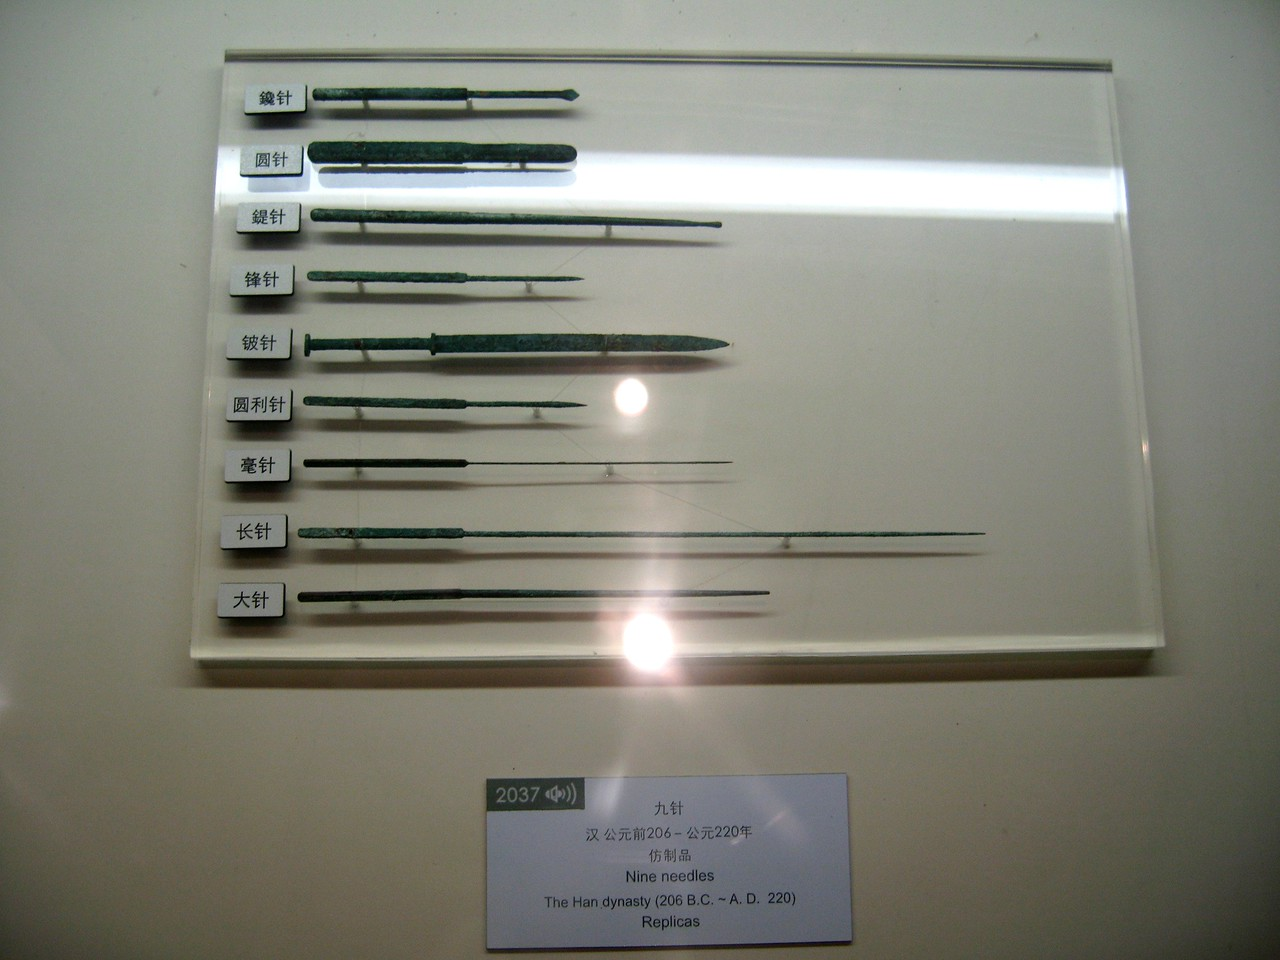 These nine needles are replicas of acupuncture needles dating back to the Han Dynasty (from 206 B.C. to 220 A.D.). The needles in those days were made of bone, but the philosophical underpinning for their use was the same as it is today - balancing Jing, Qi and Shen, the three vital elements of the human body. Jing is best described as the ultimate essence and source of life. Qi is energy and Shen is spirit.